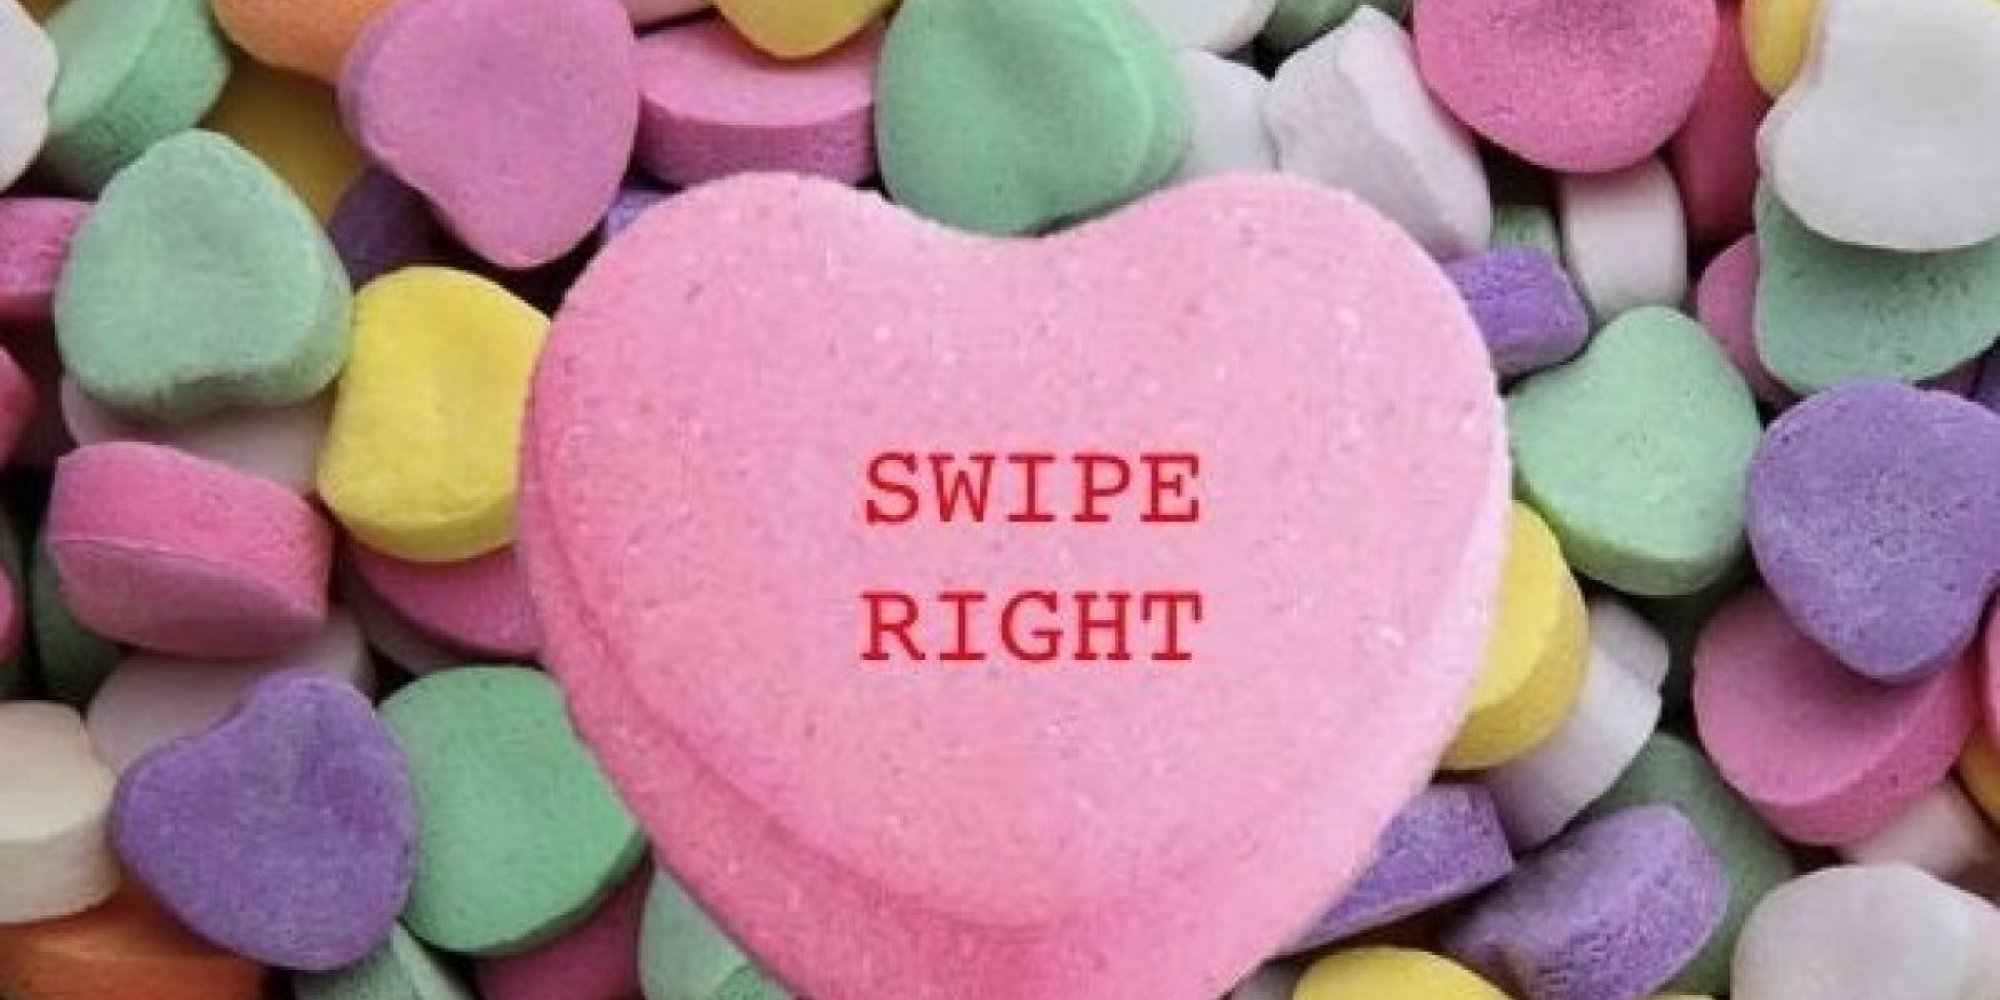 Funny Rejected Candy Heart Sayings Are Here For Valentine's Day Pictures of candy heart messages